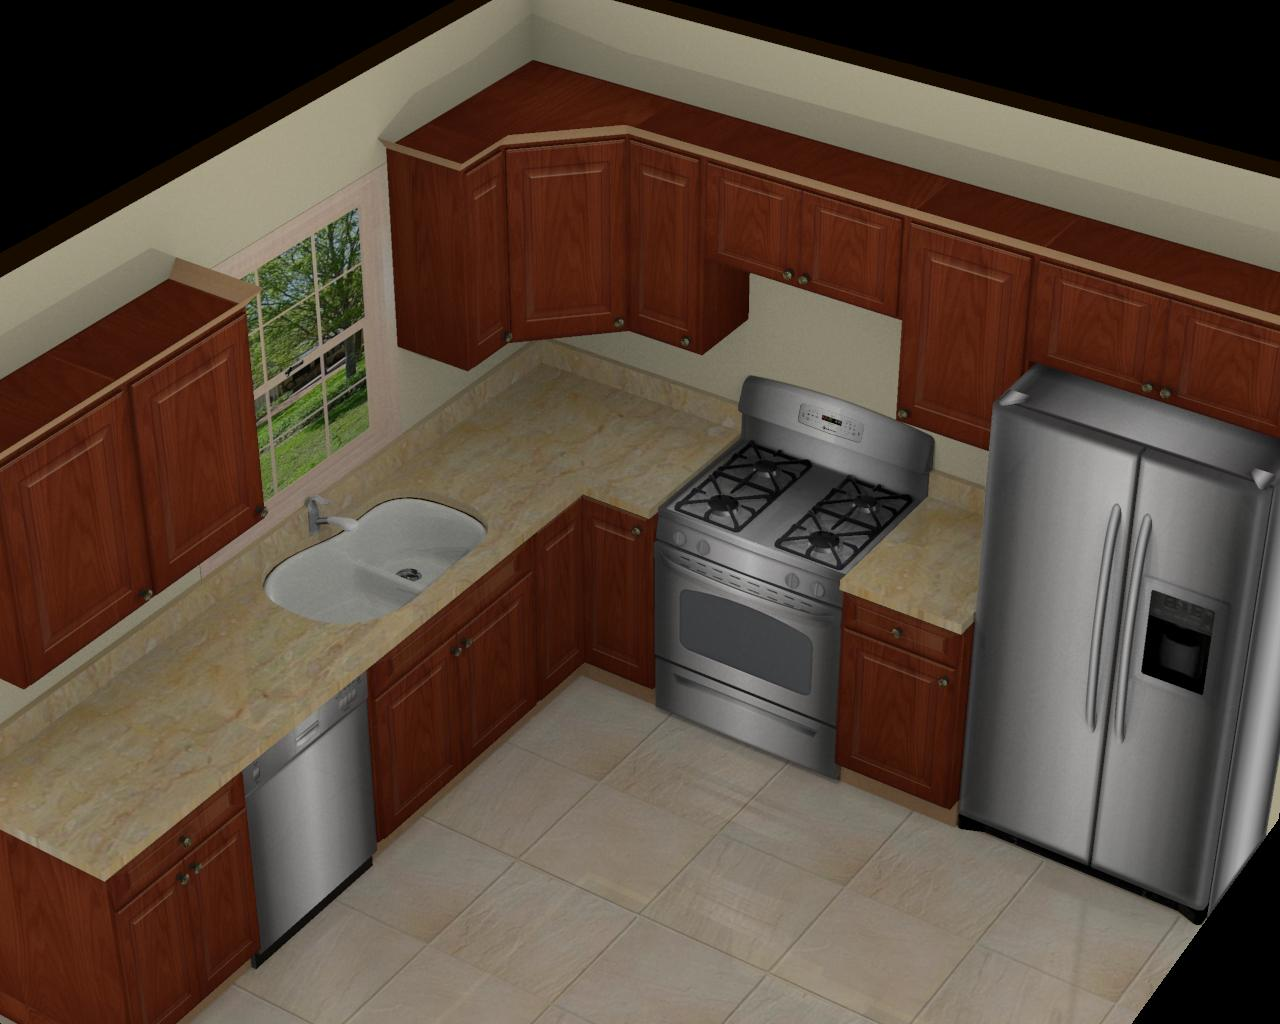 Foundation dezin decor 3d kitchen model design for Modular kitchen designs for 10 x 8